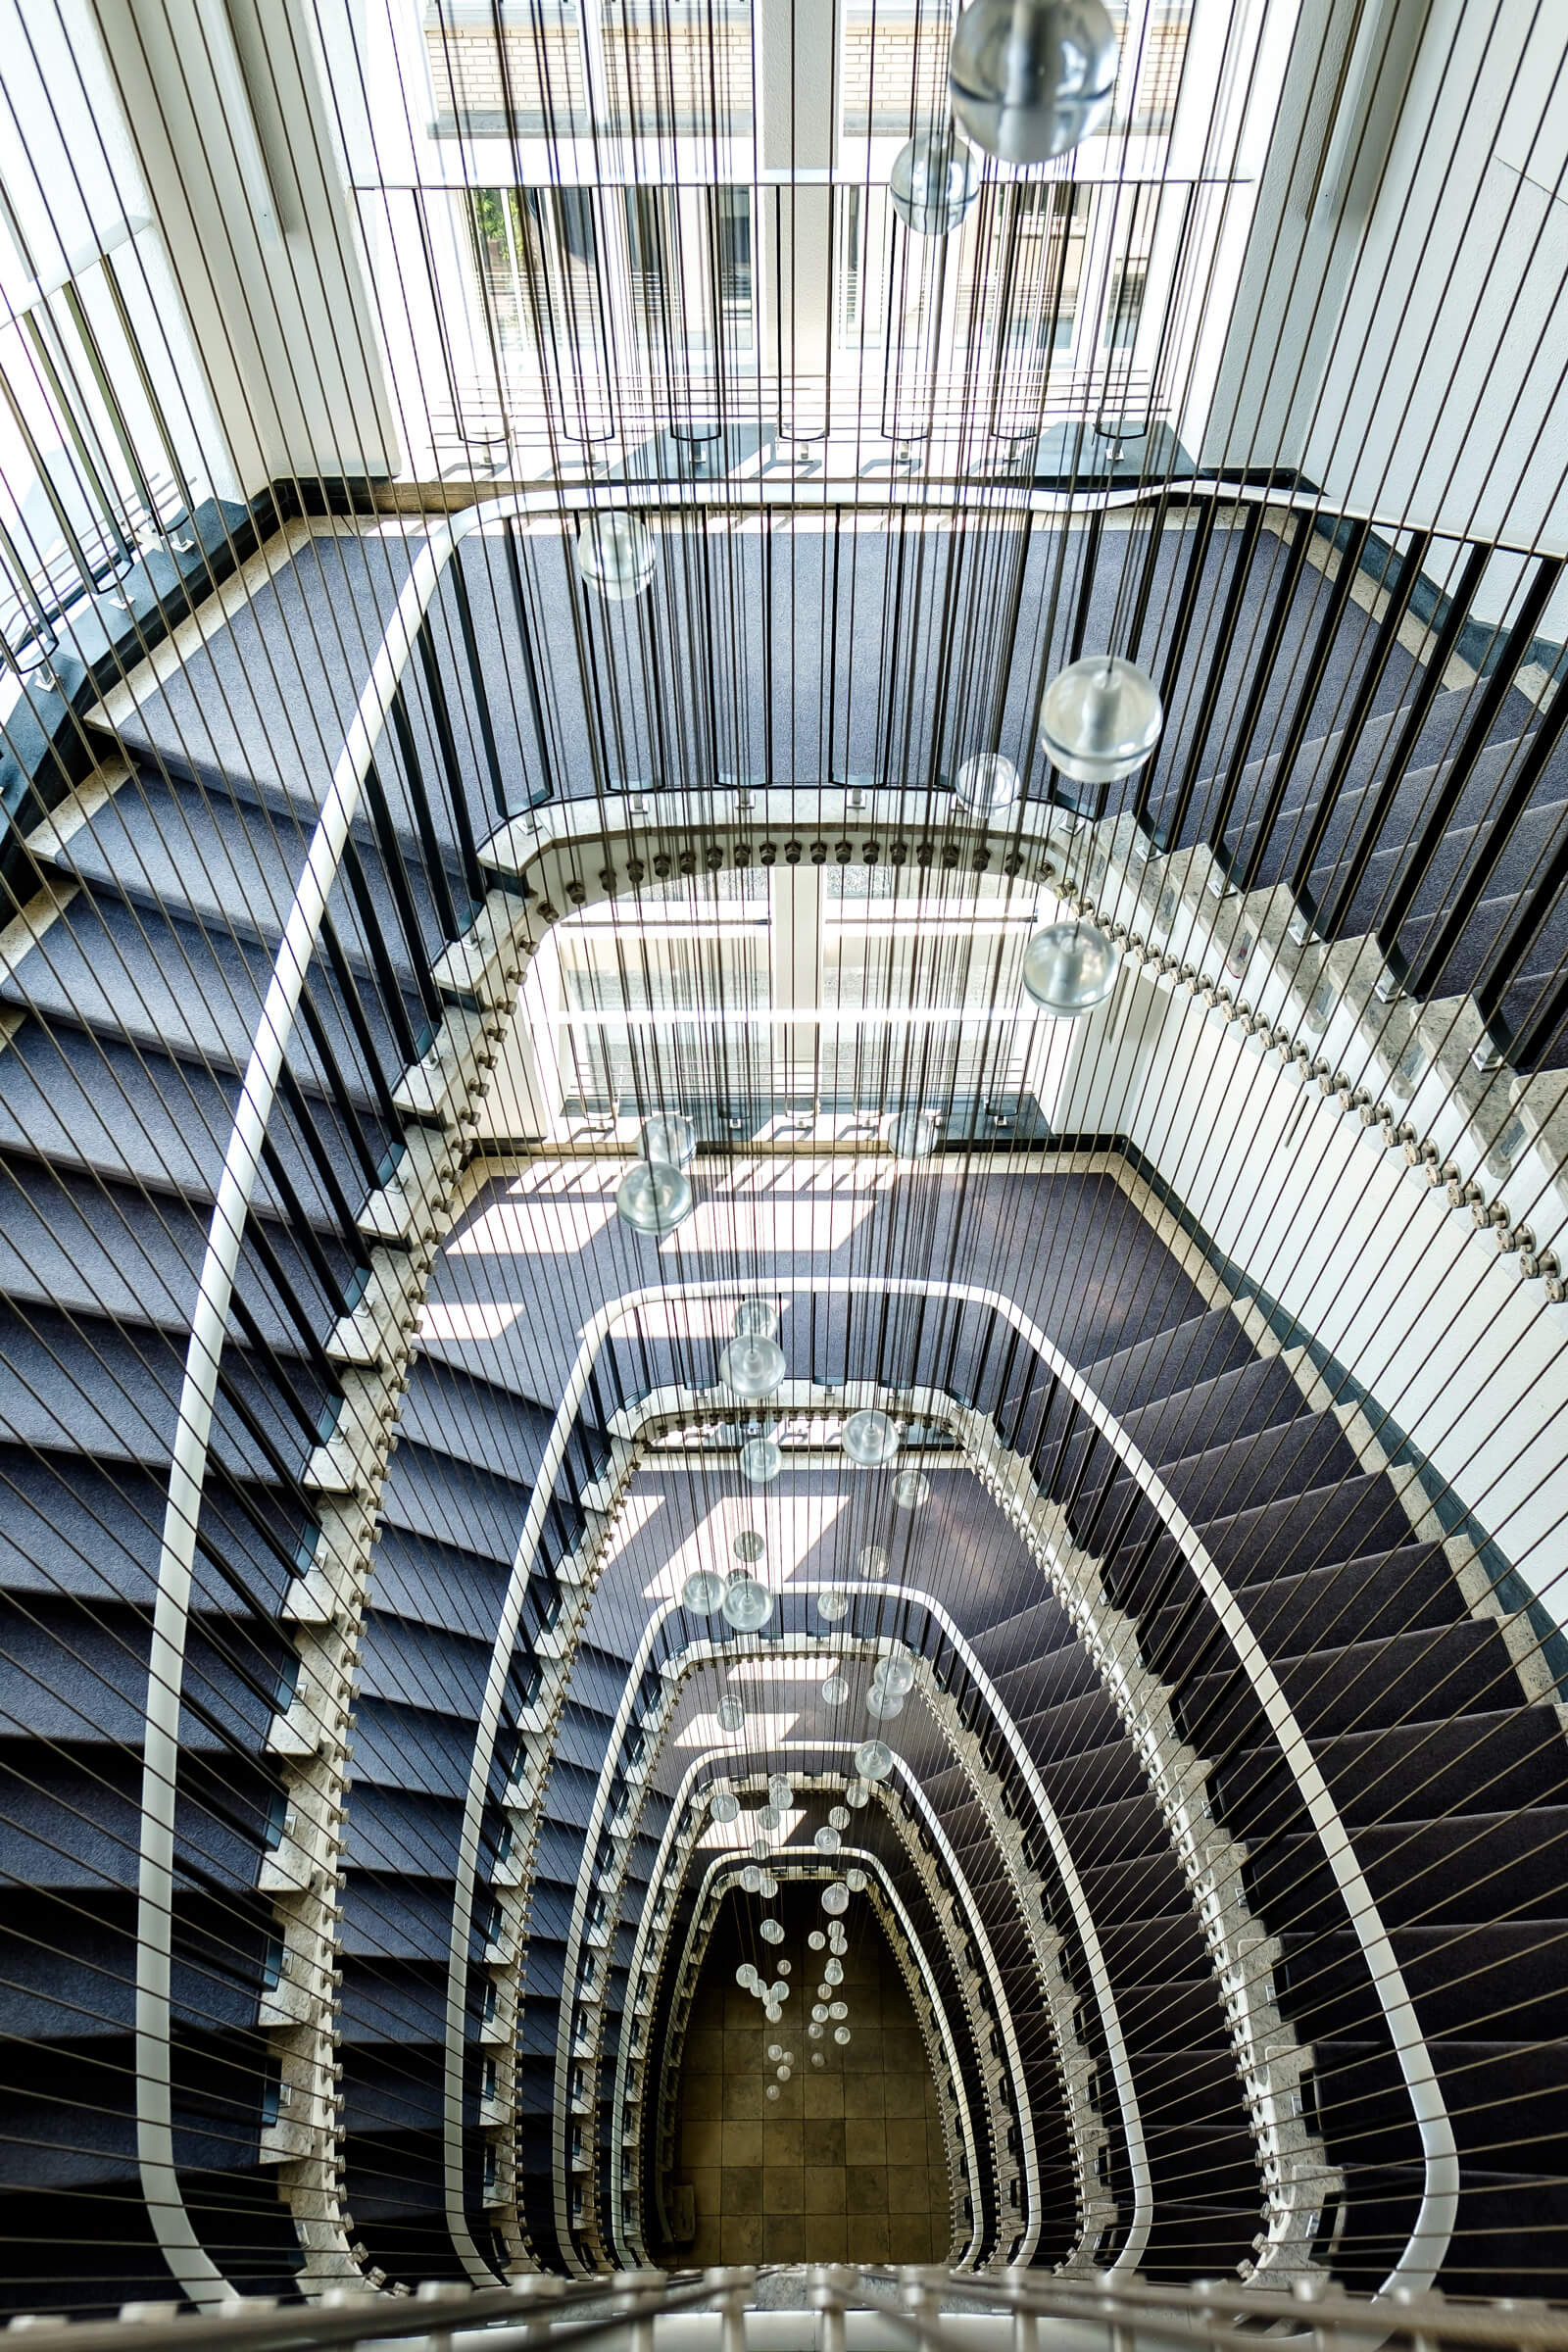 Where to find the most stunning spiral staircases in Zürich